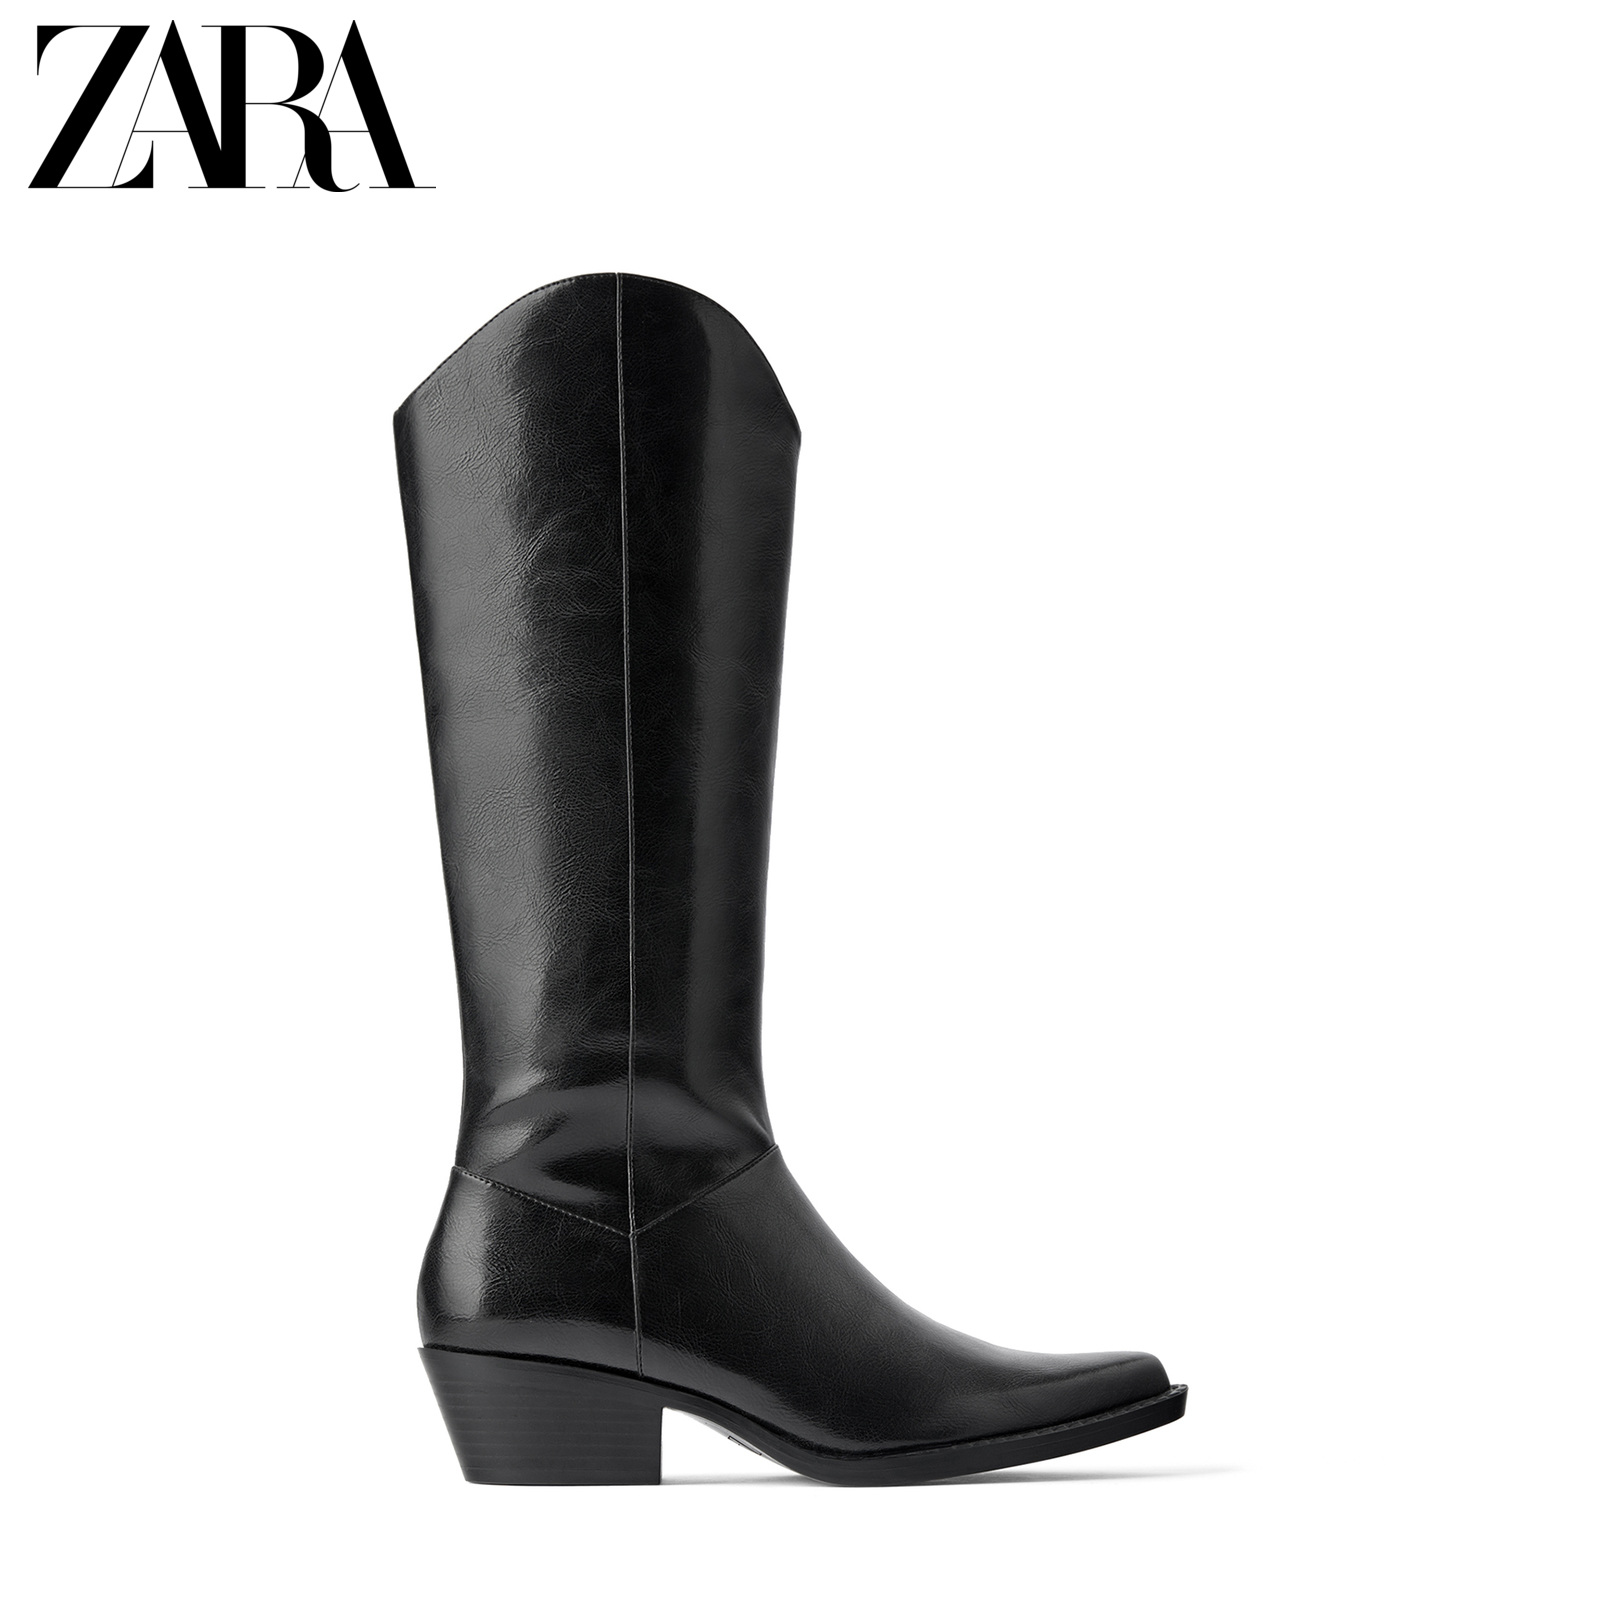 Zara new TRF women's shoes black jeans high heels fashion boots 17052001040